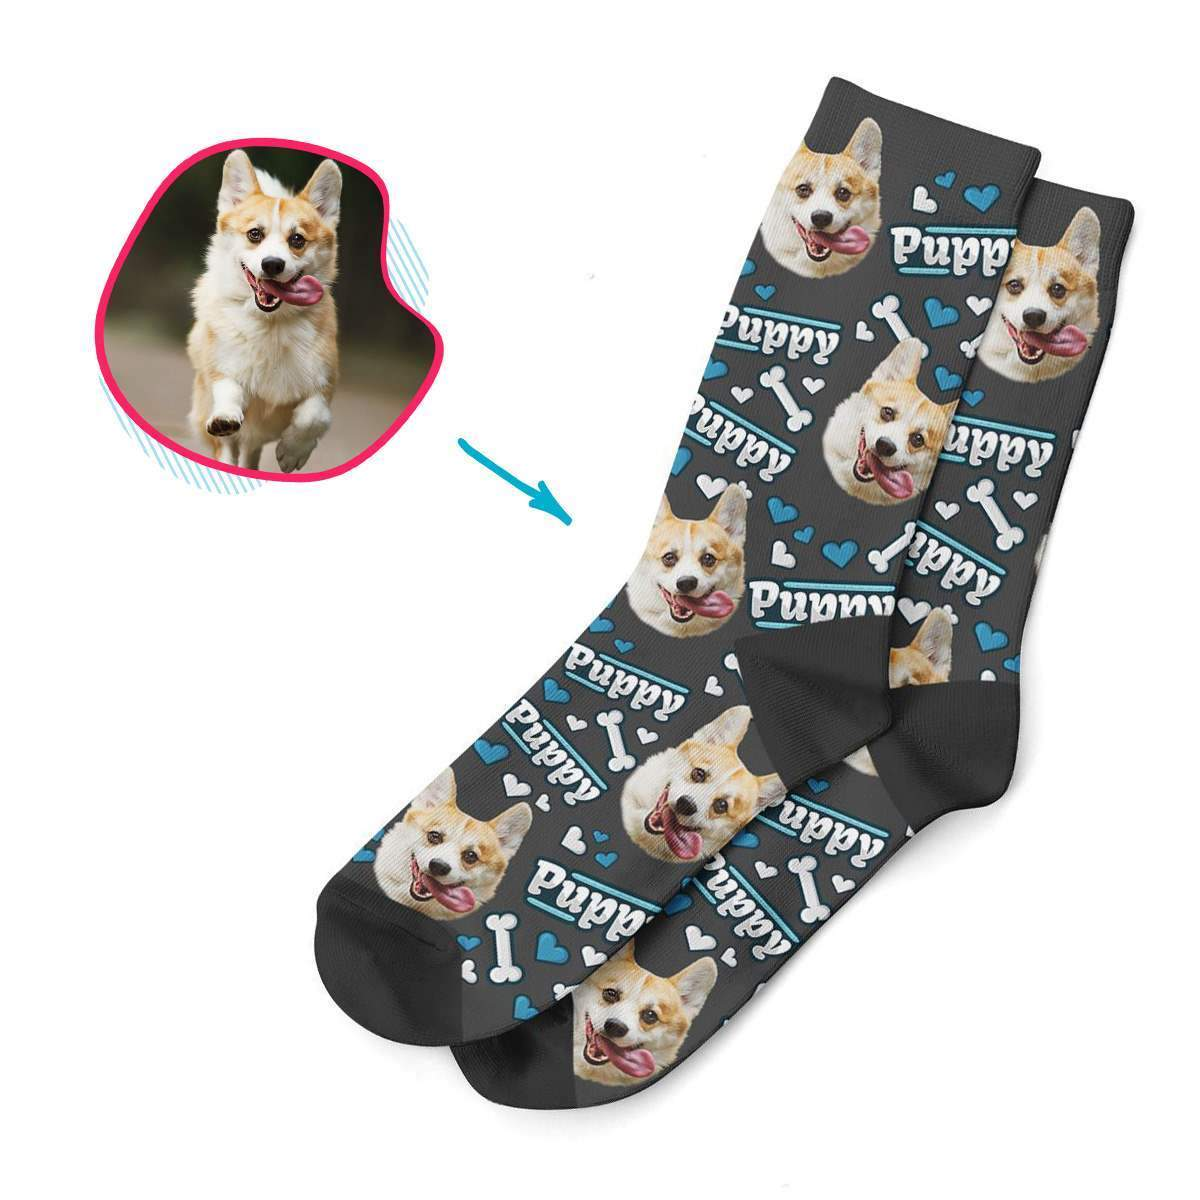 dark Puppy socks personalized with photo of face printed on them